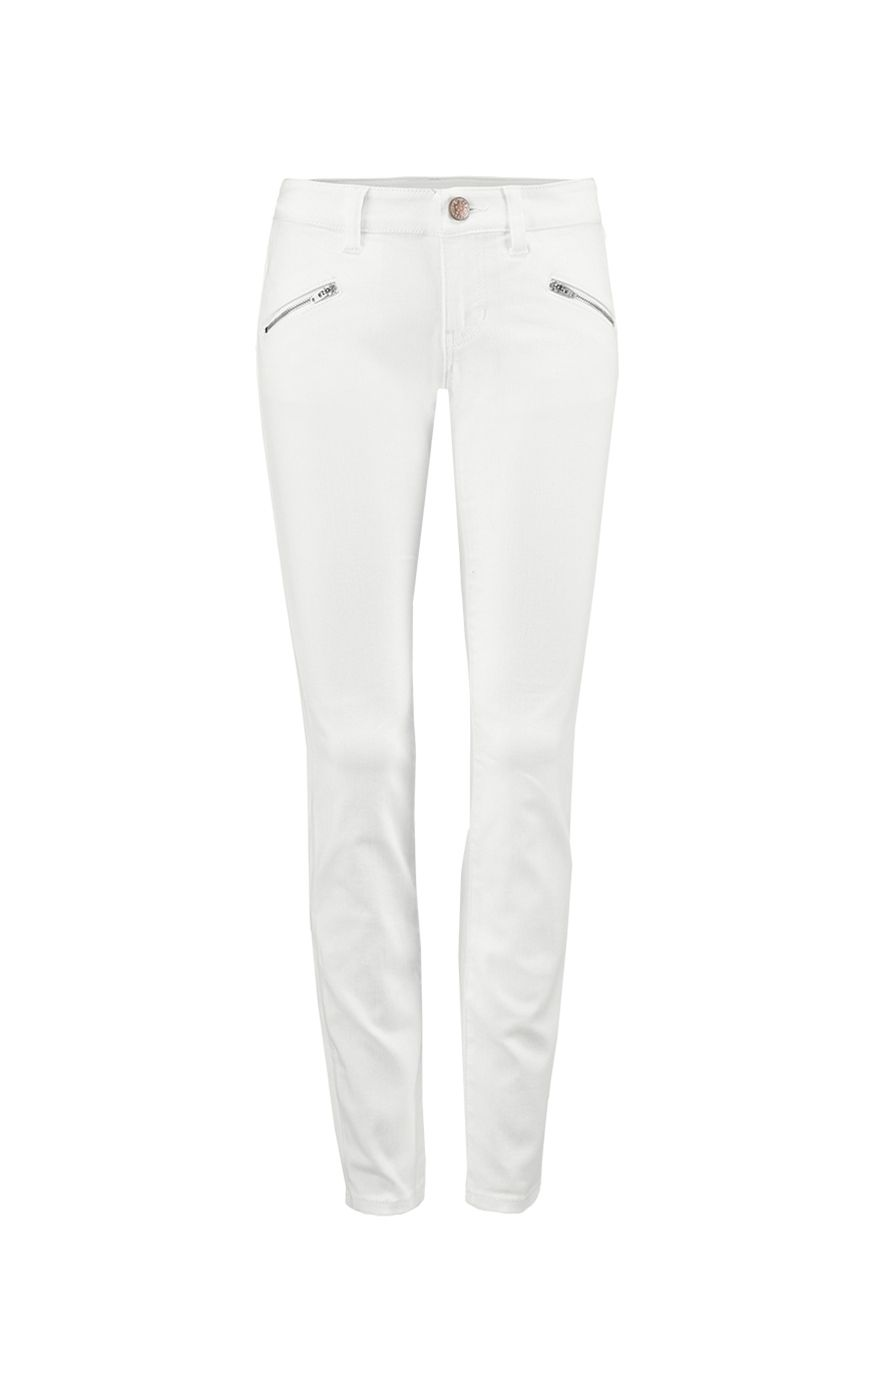 2517d3d1831723 Discover cabi's Zip Skinny jean, a skinny jean with chic zipper details and  made with the comfiest super-stretch denim. View our Spring 2017 women's ...